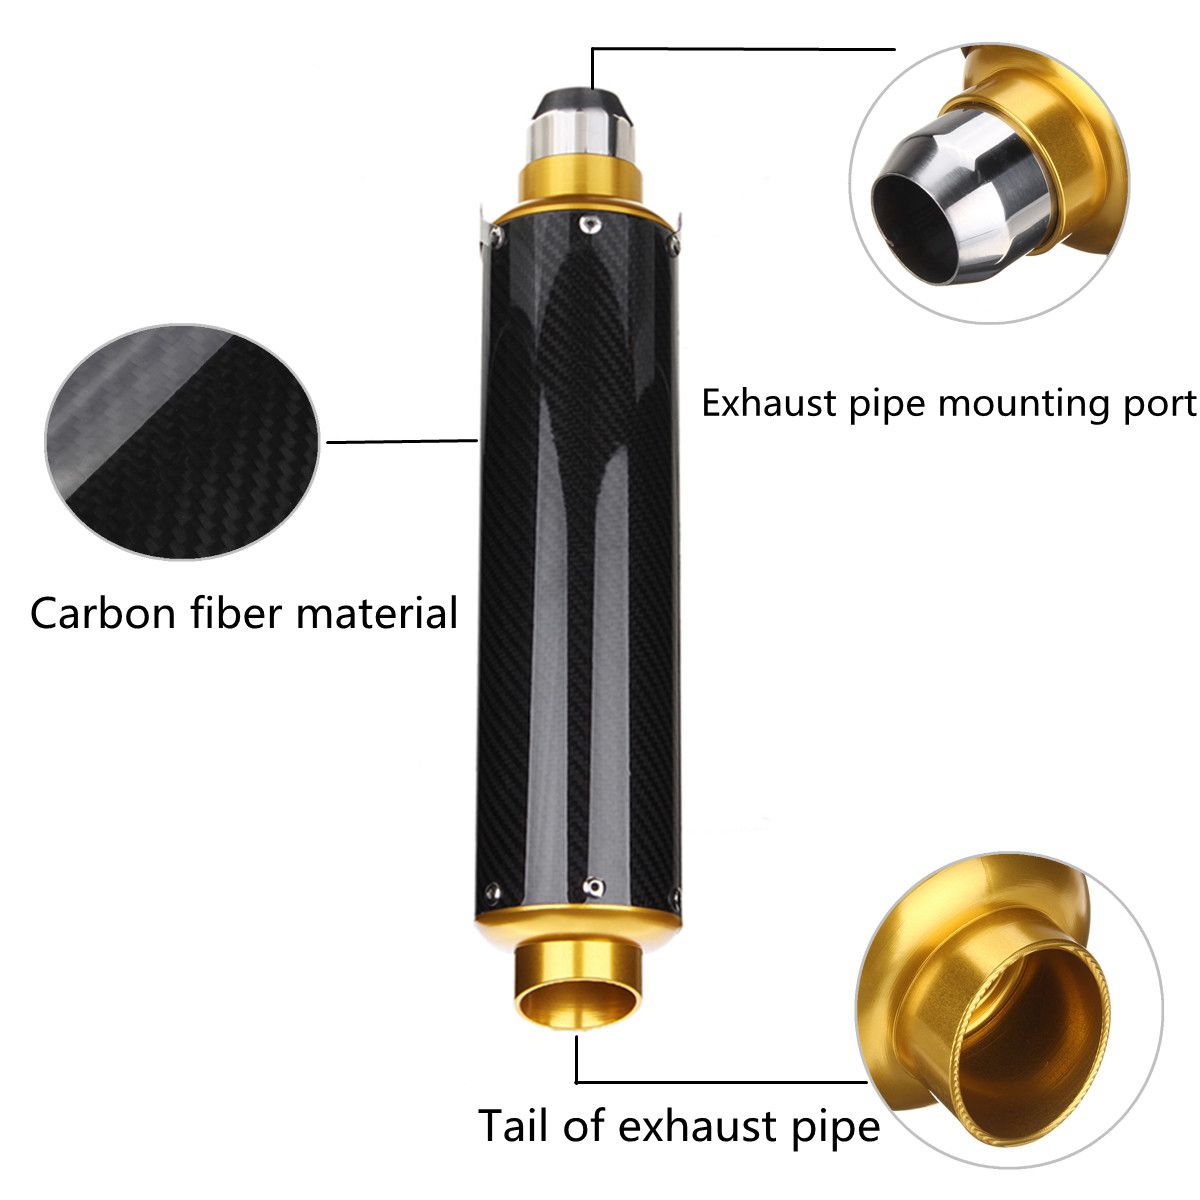 51mm Slip-On Carbon Fiber Motorcycle Exhaust Muffler Universal For 125CC-1200CC Street/Sport/Racing motorcycles and Scooters